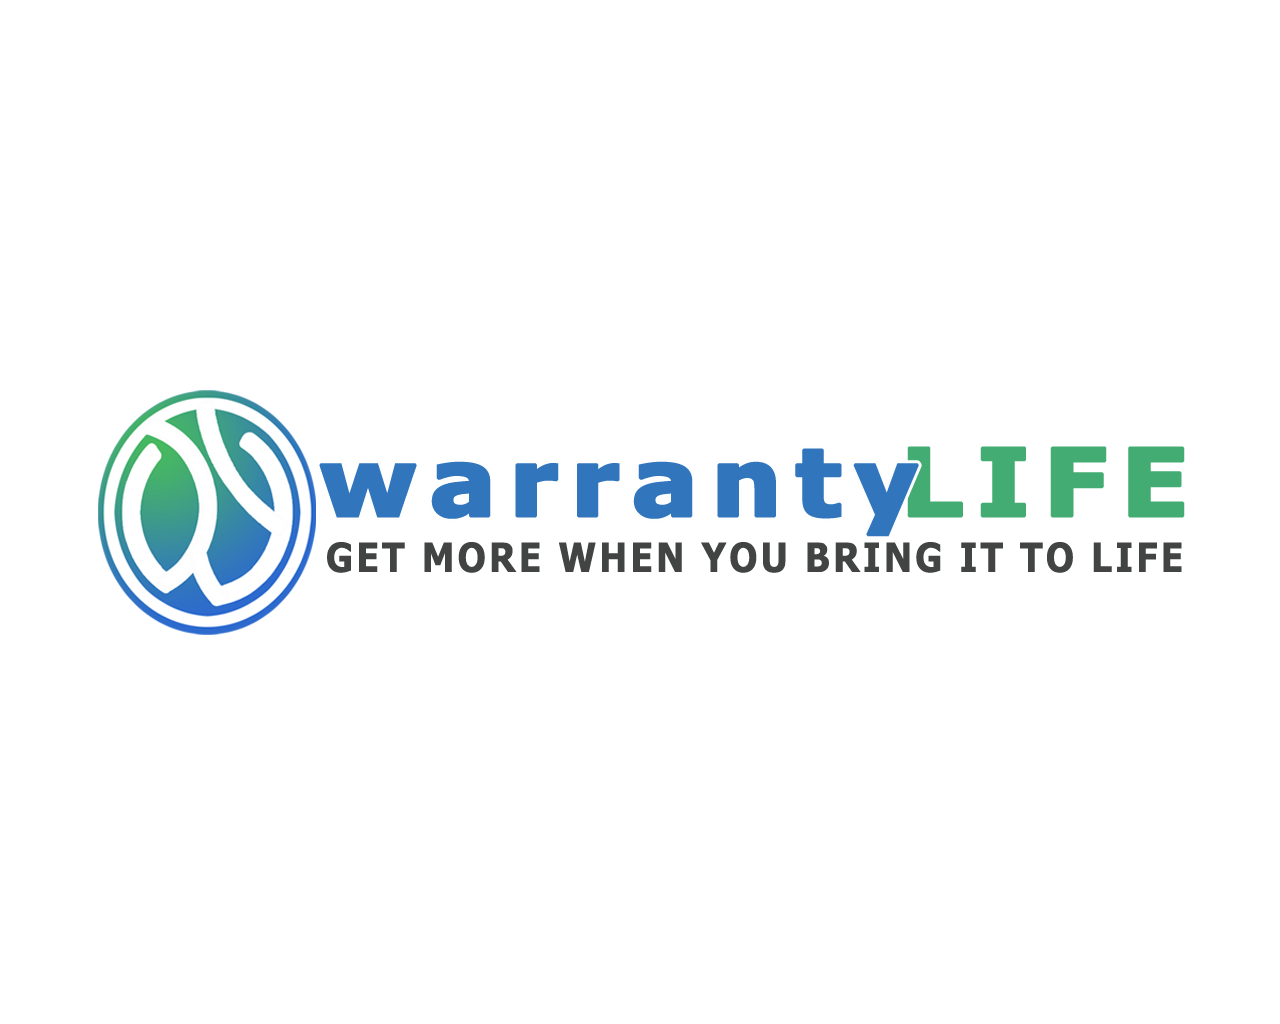 Logo Design by bolshoi_booze - Entry No. 67 in the Logo Design Contest WarrantyLife Logo Design.